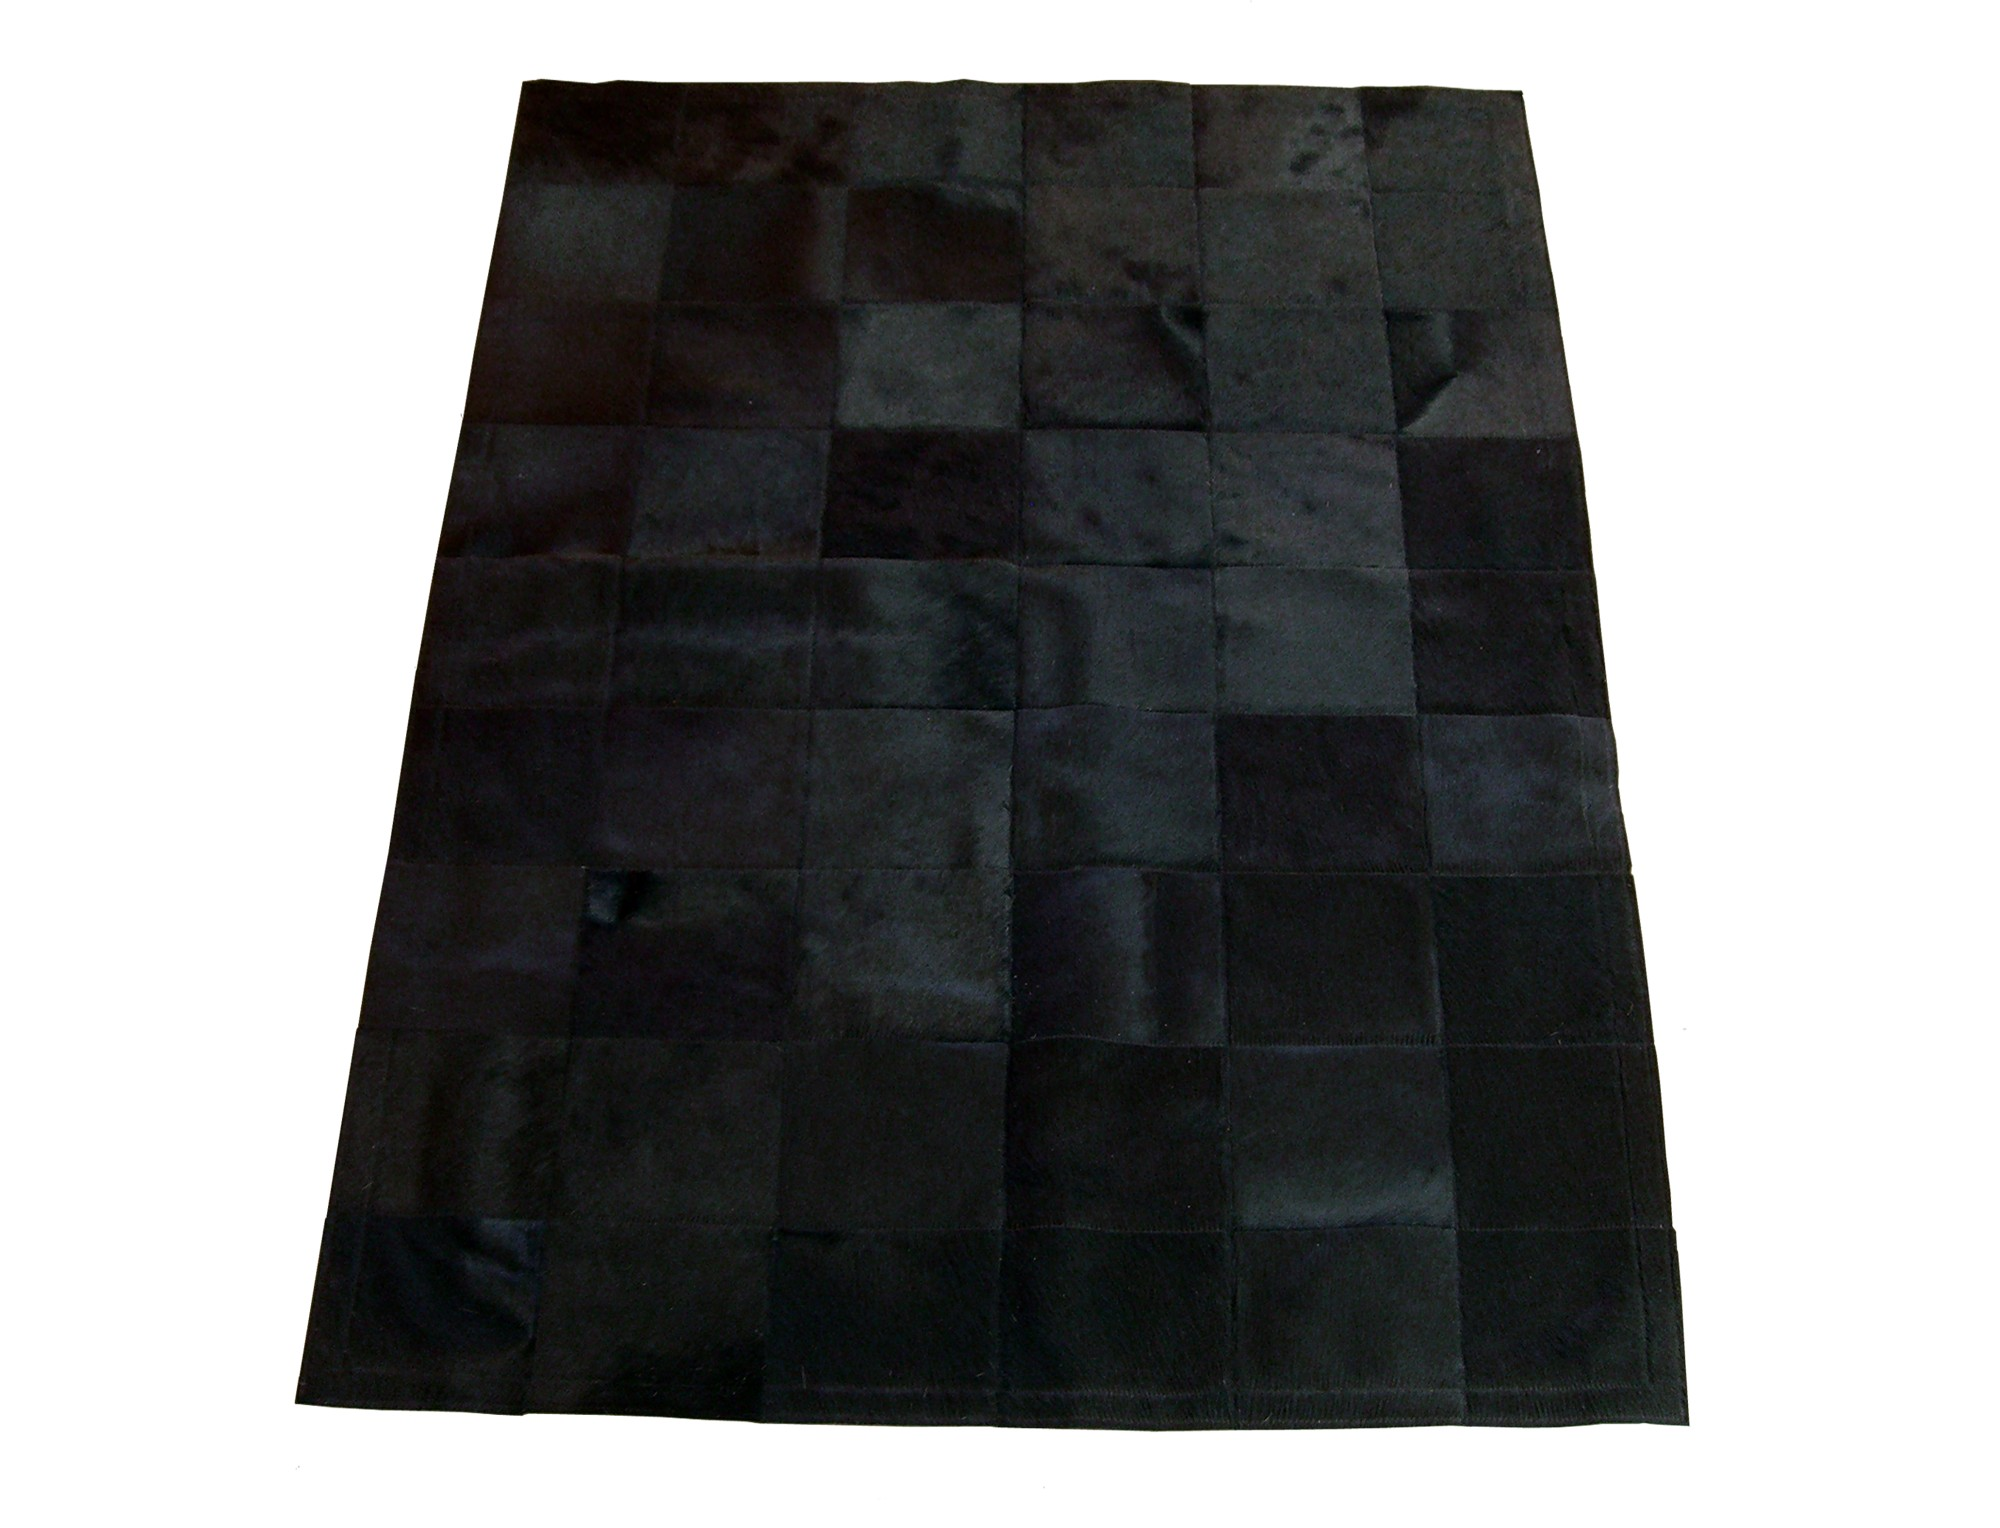 tapis patchwork en peau de vache teint e noire. Black Bedroom Furniture Sets. Home Design Ideas